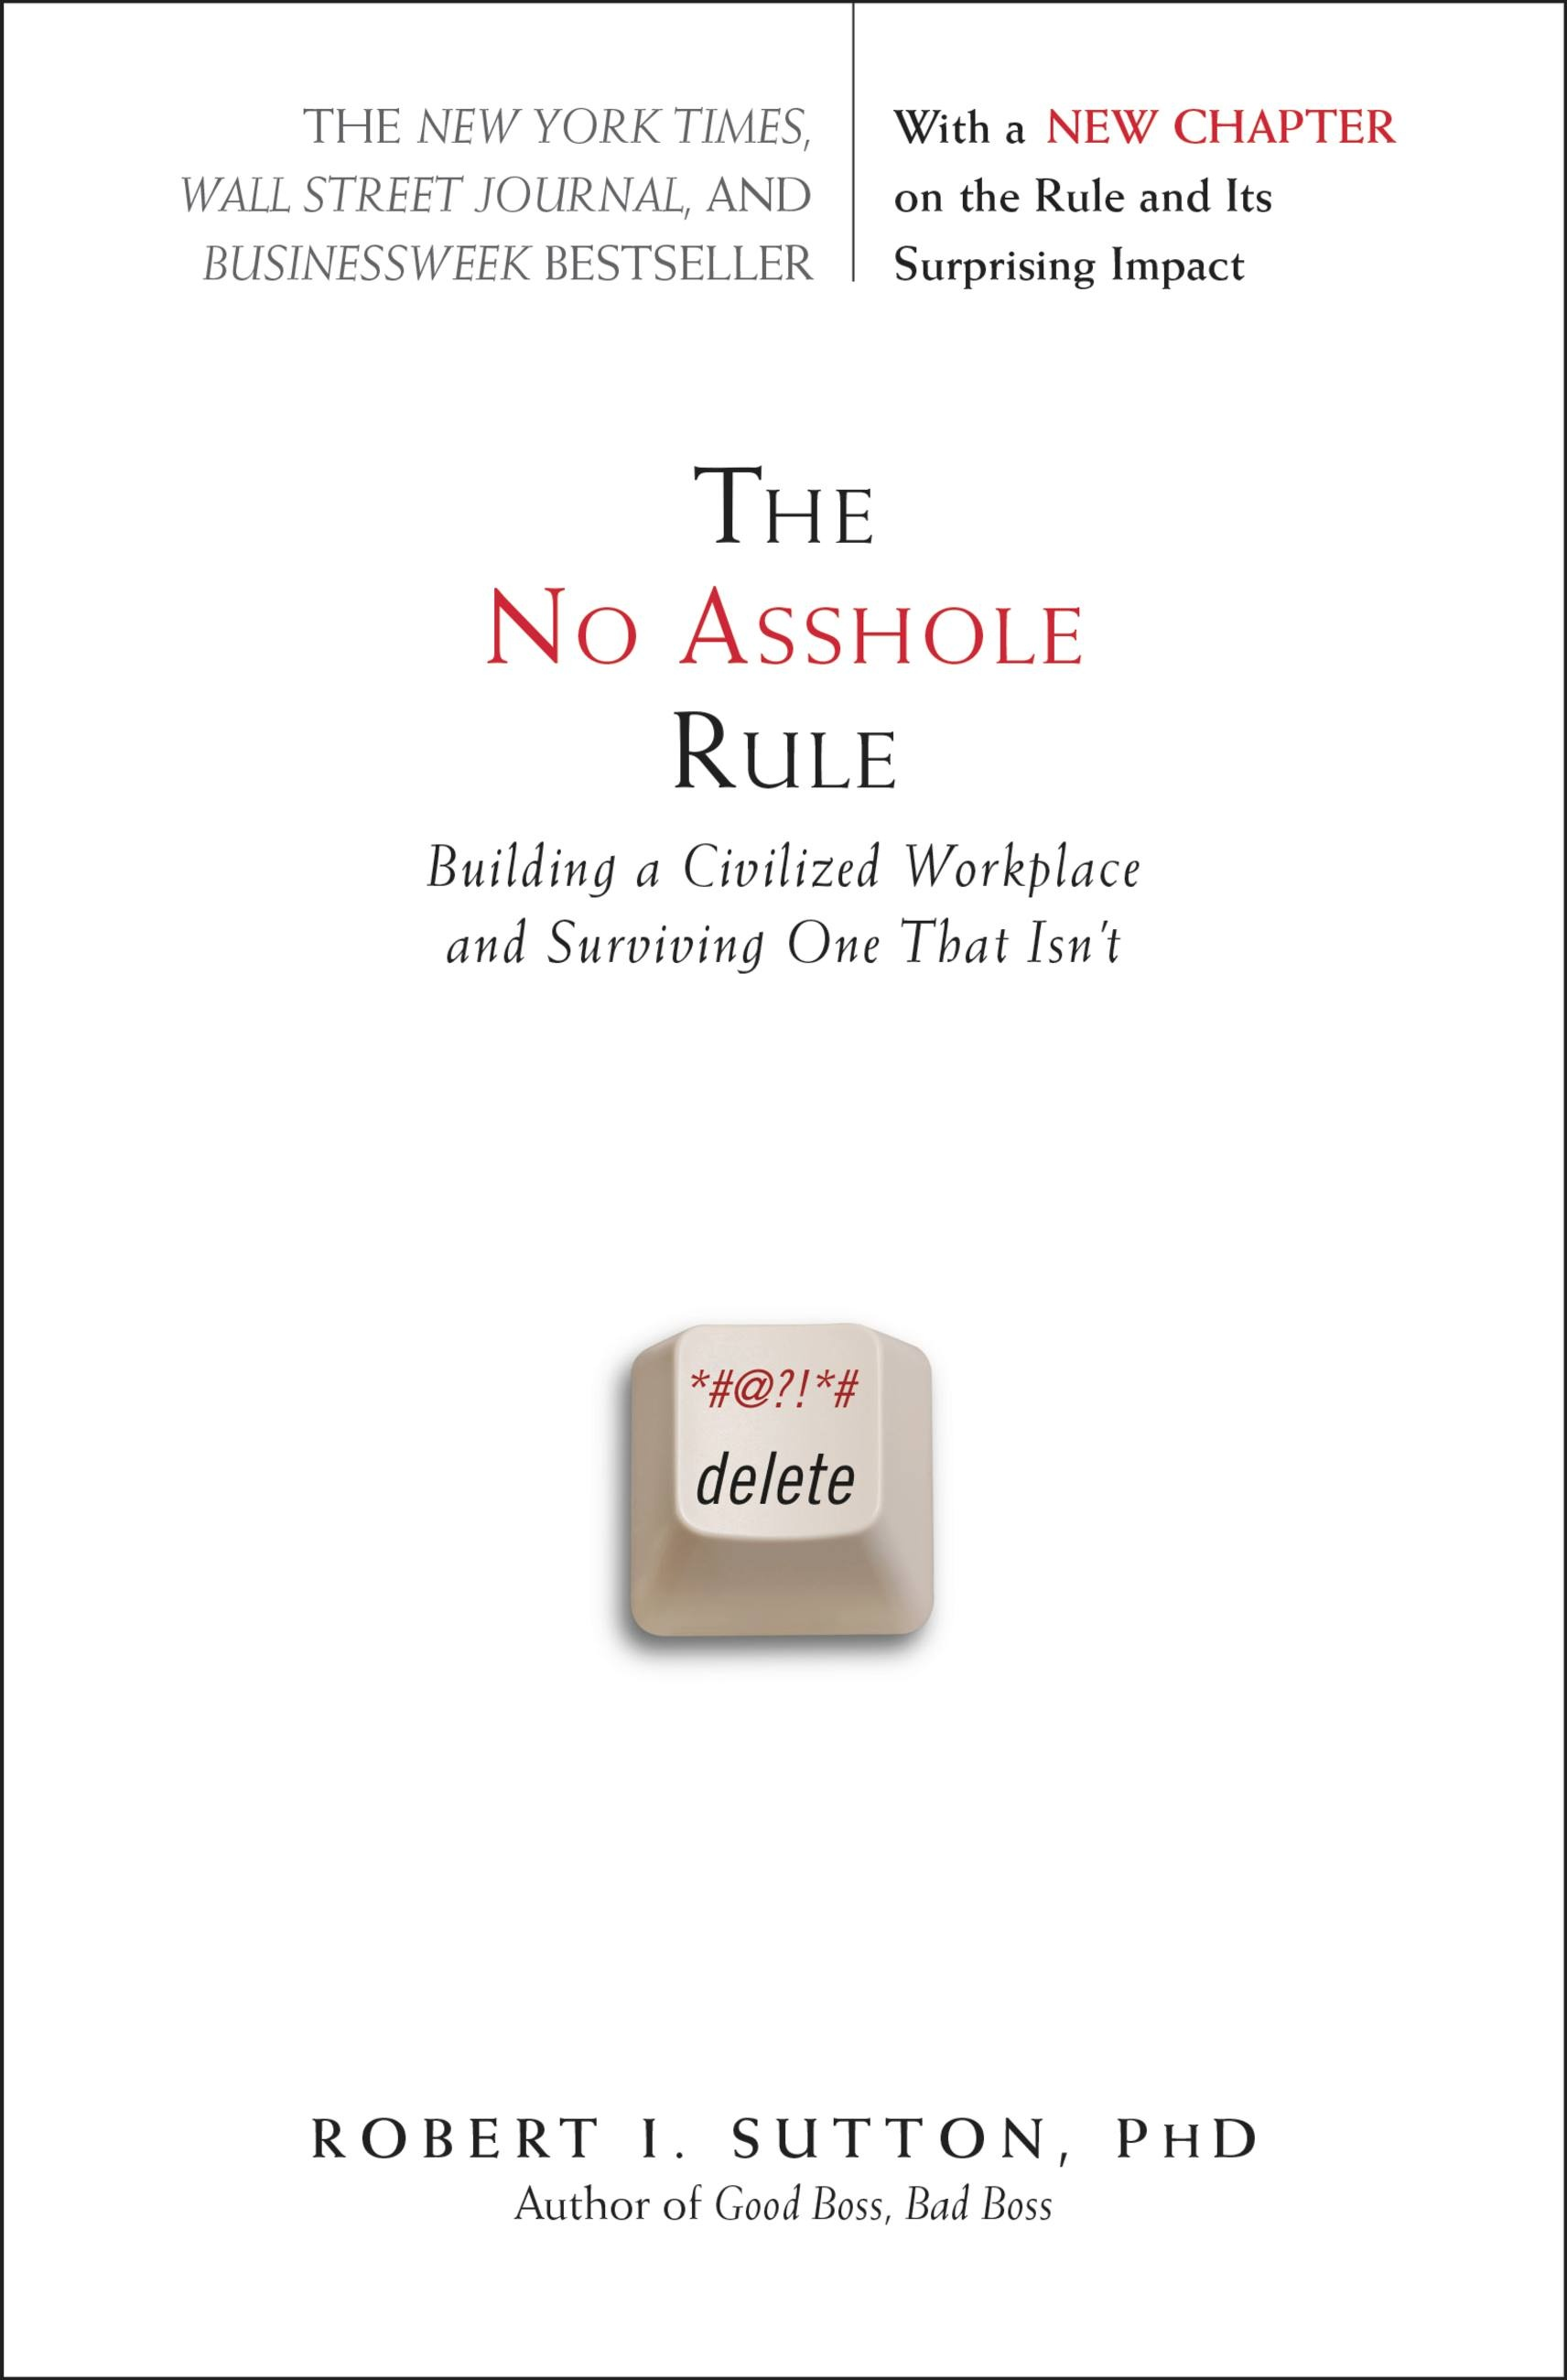 Image result for The No Asshole Rule by Sutton Robert I.